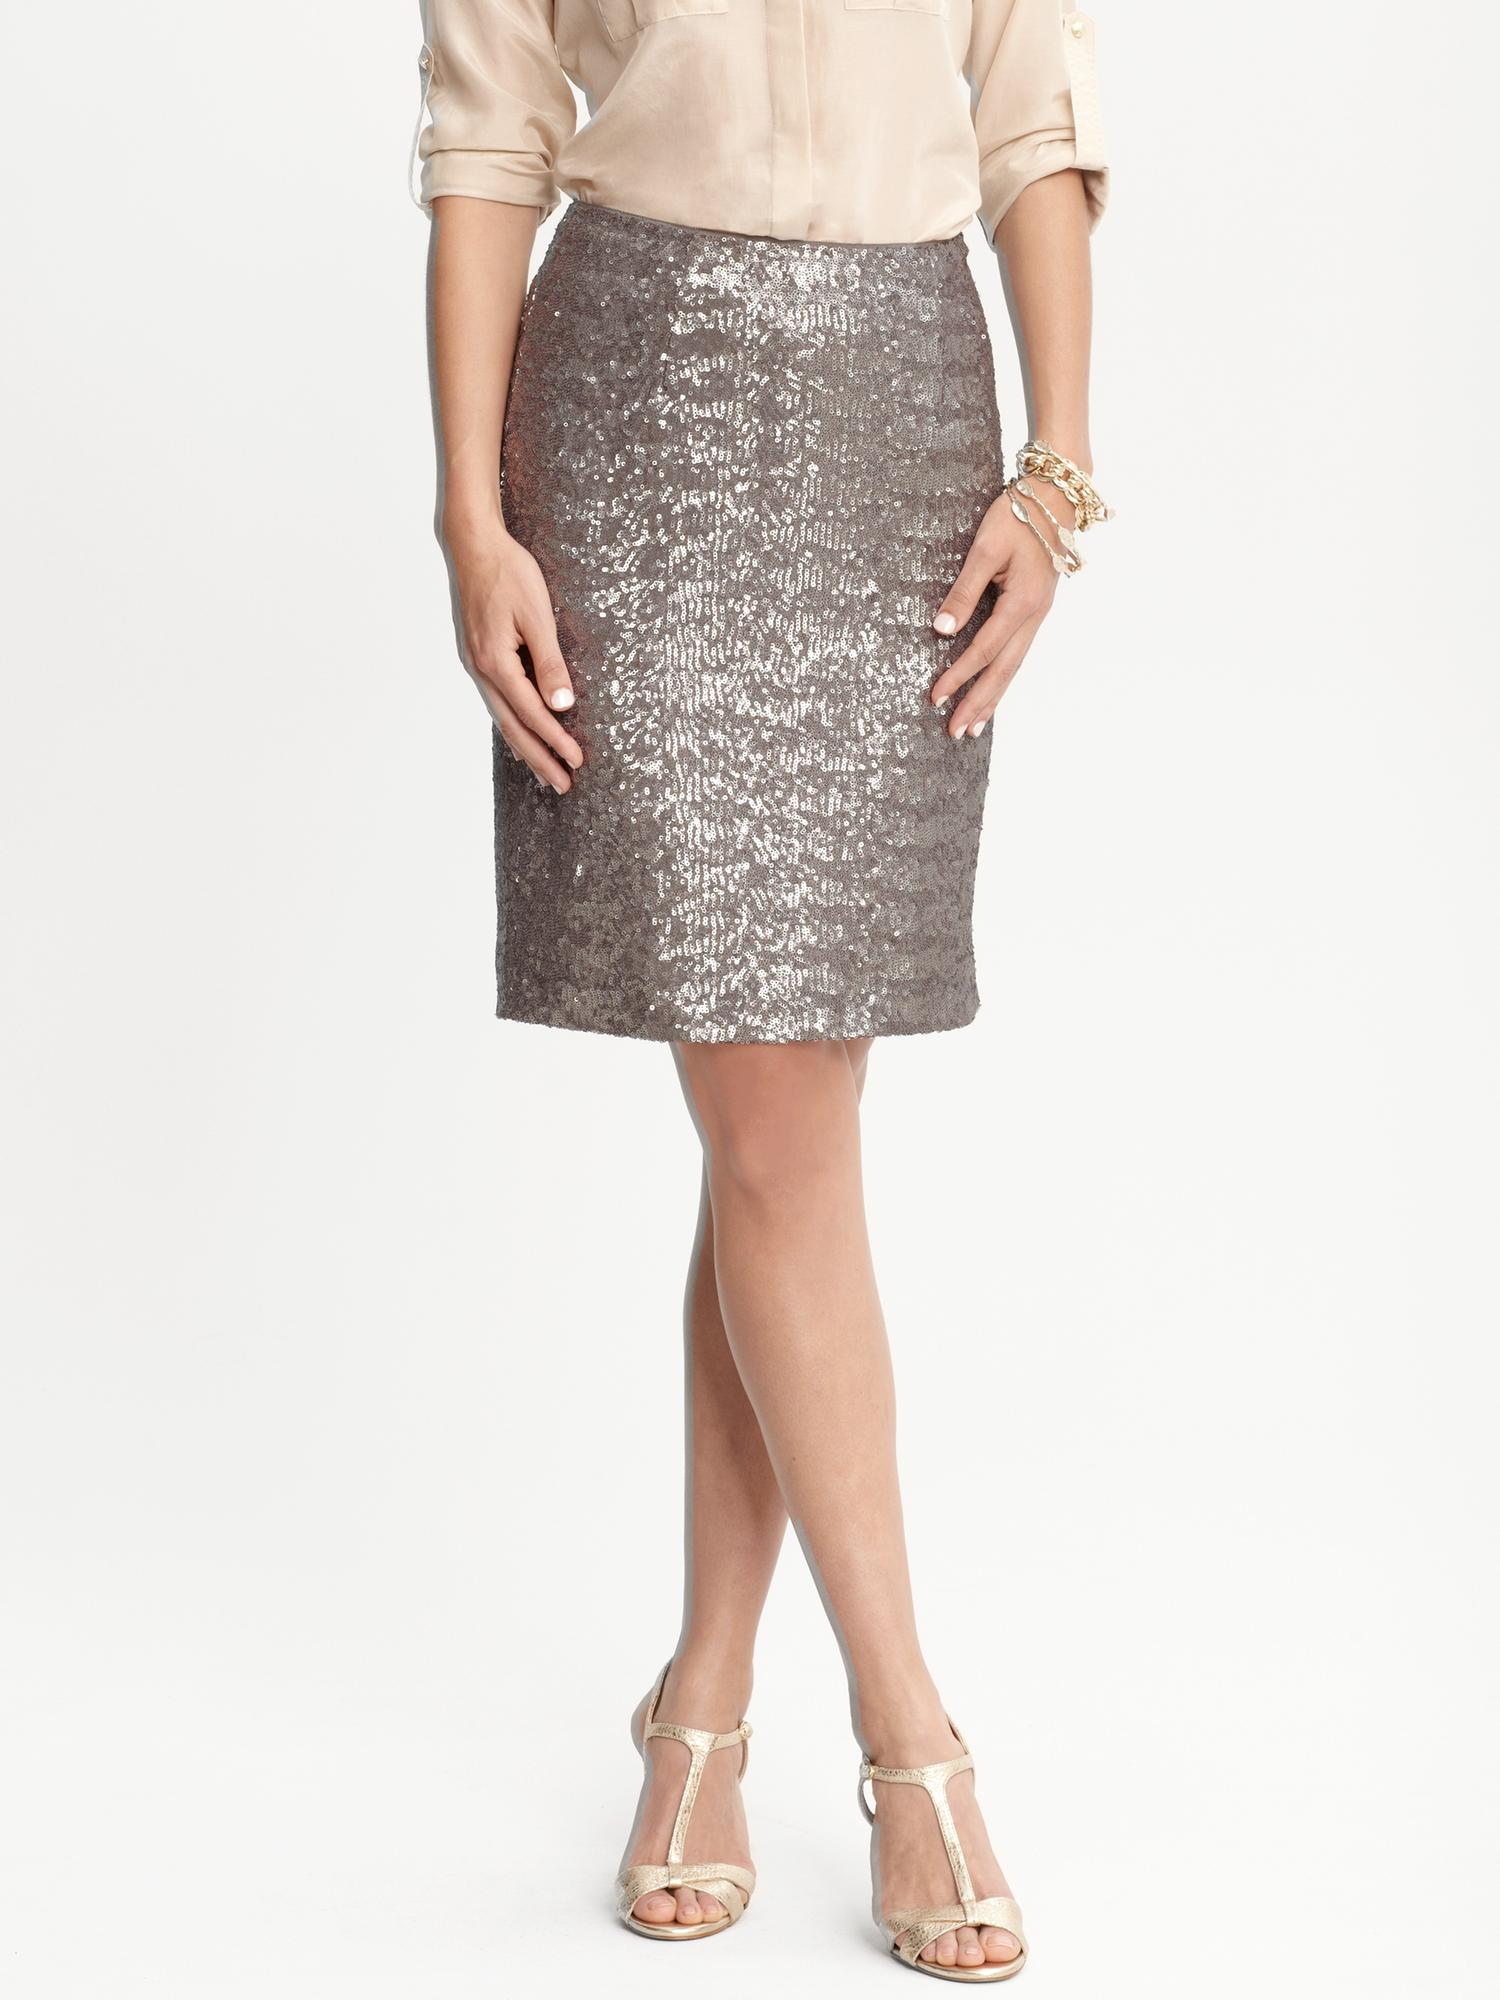 b16d4aef59d9a6 Lyst - Banana Republic Heritage Silver Sequin Pencil Skirt in Metallic